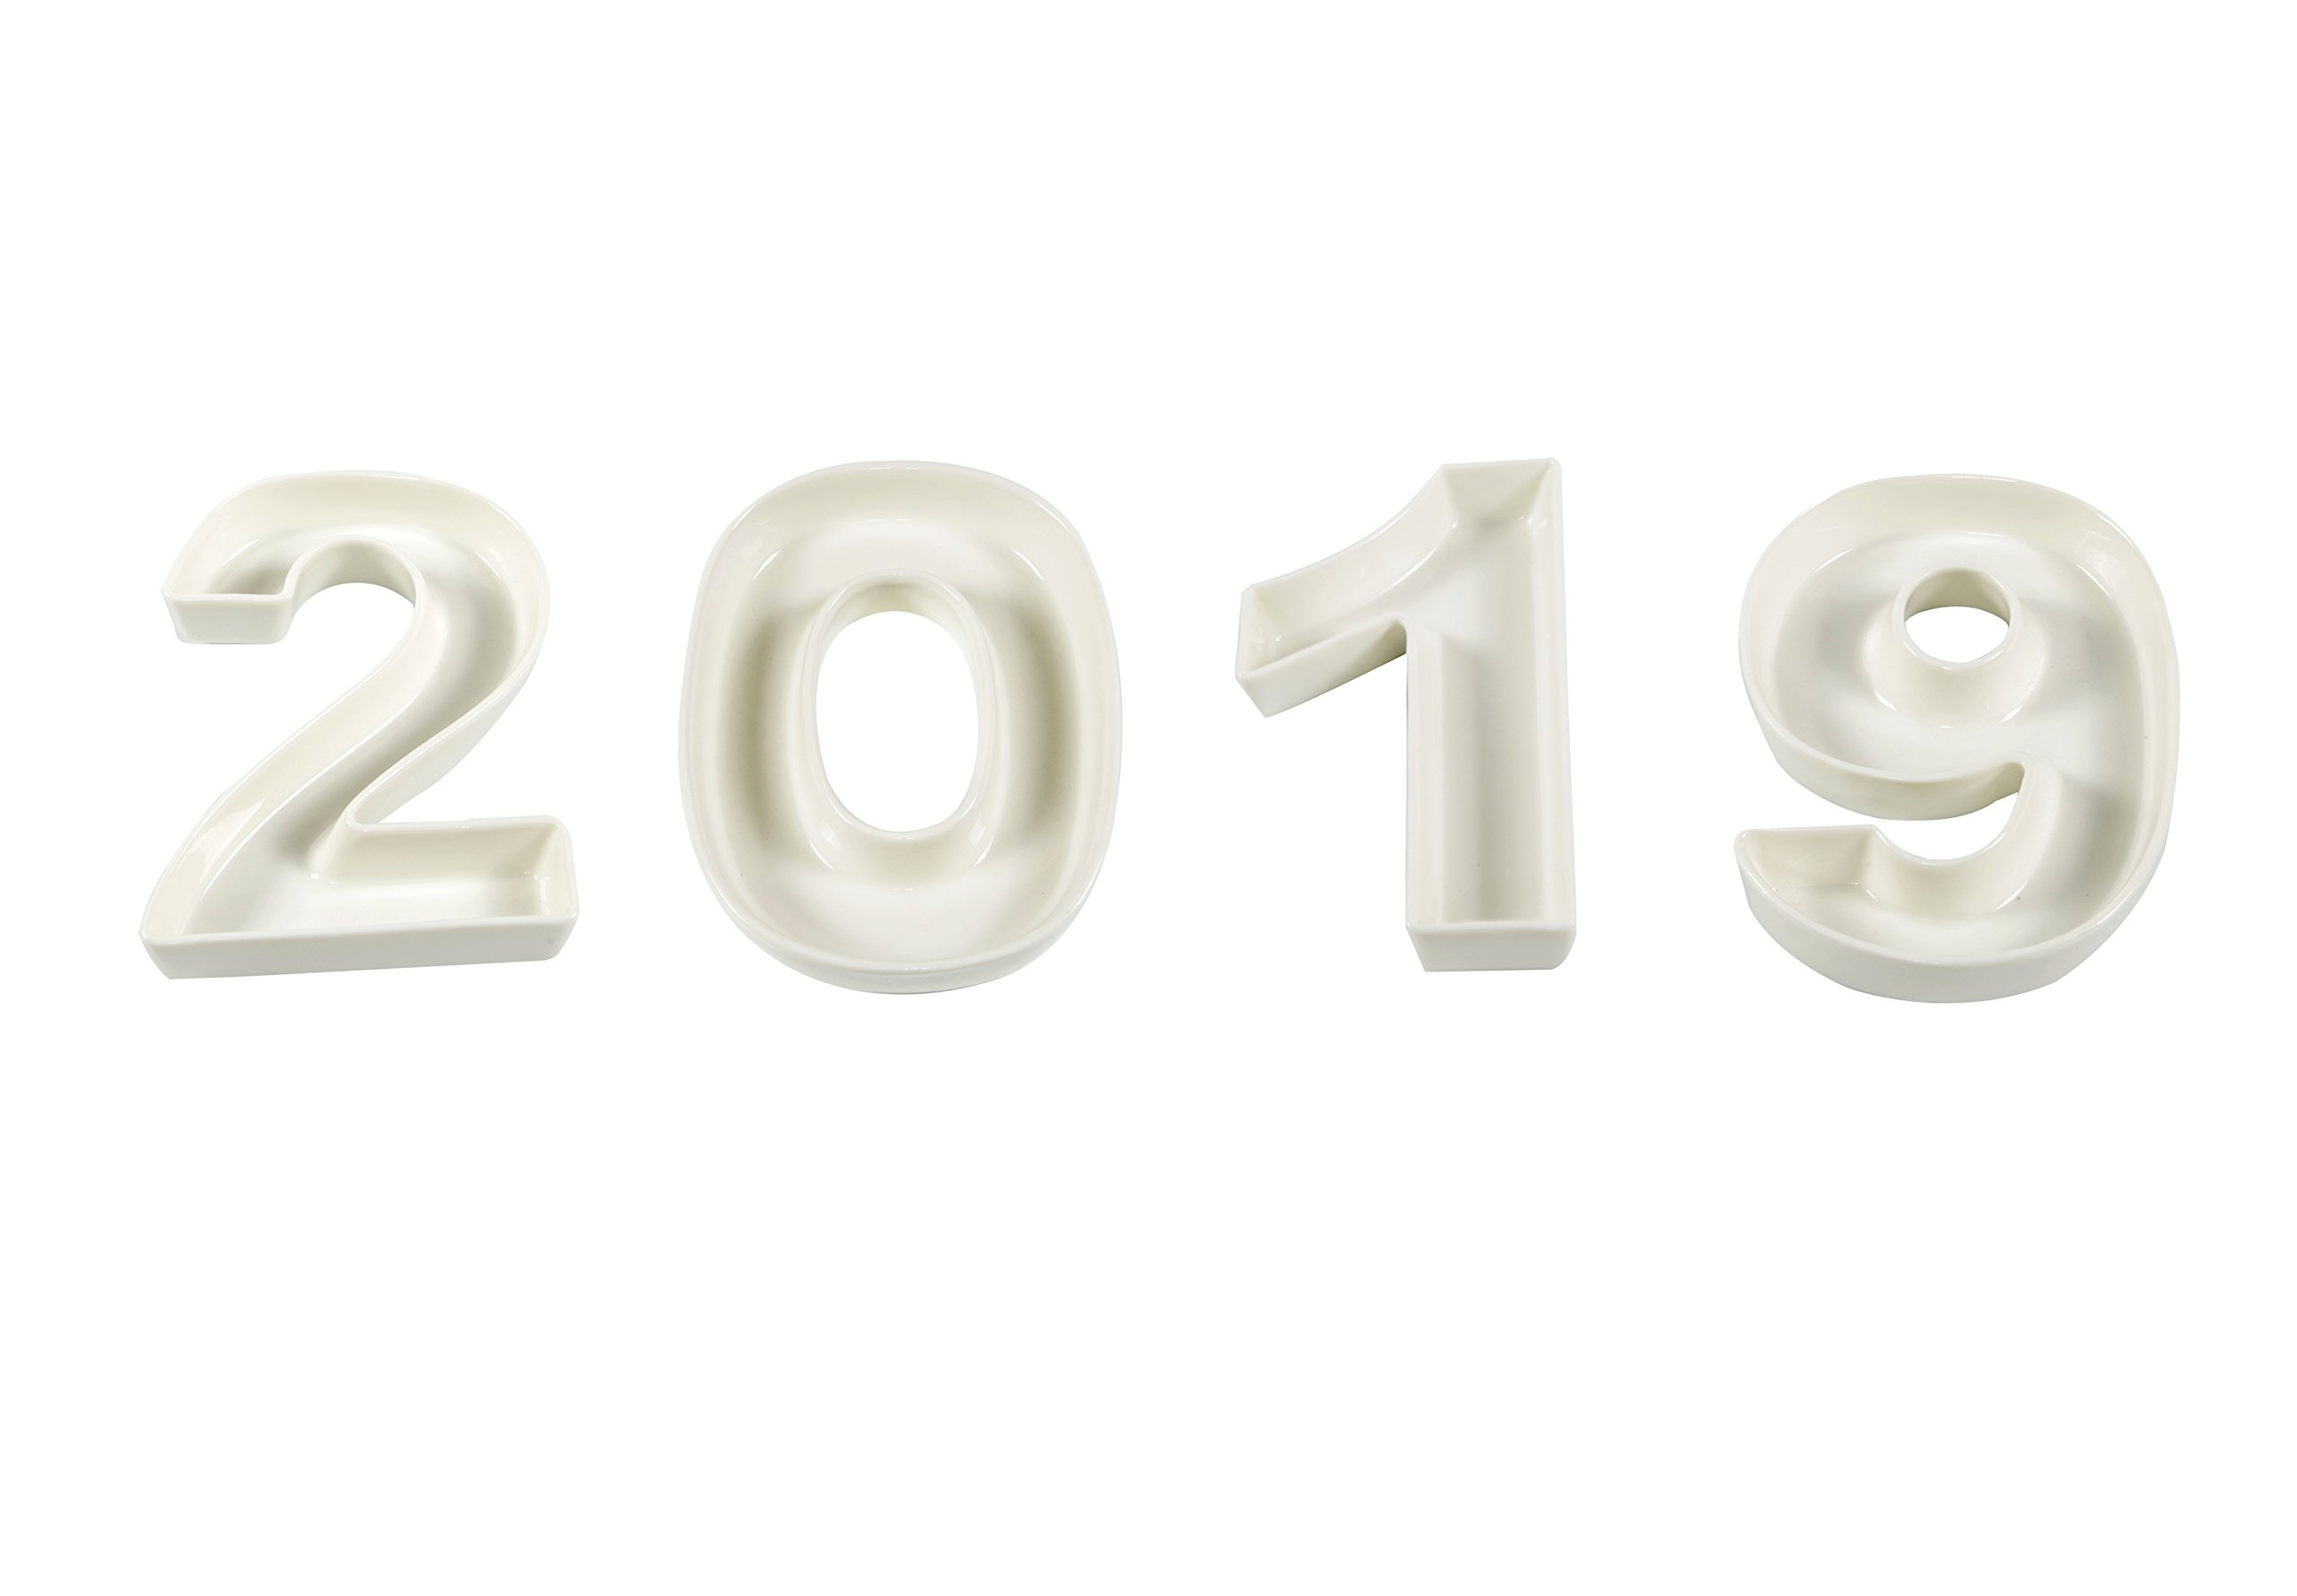 White Ceramic Number Dish for Table Decoration, Number 2019